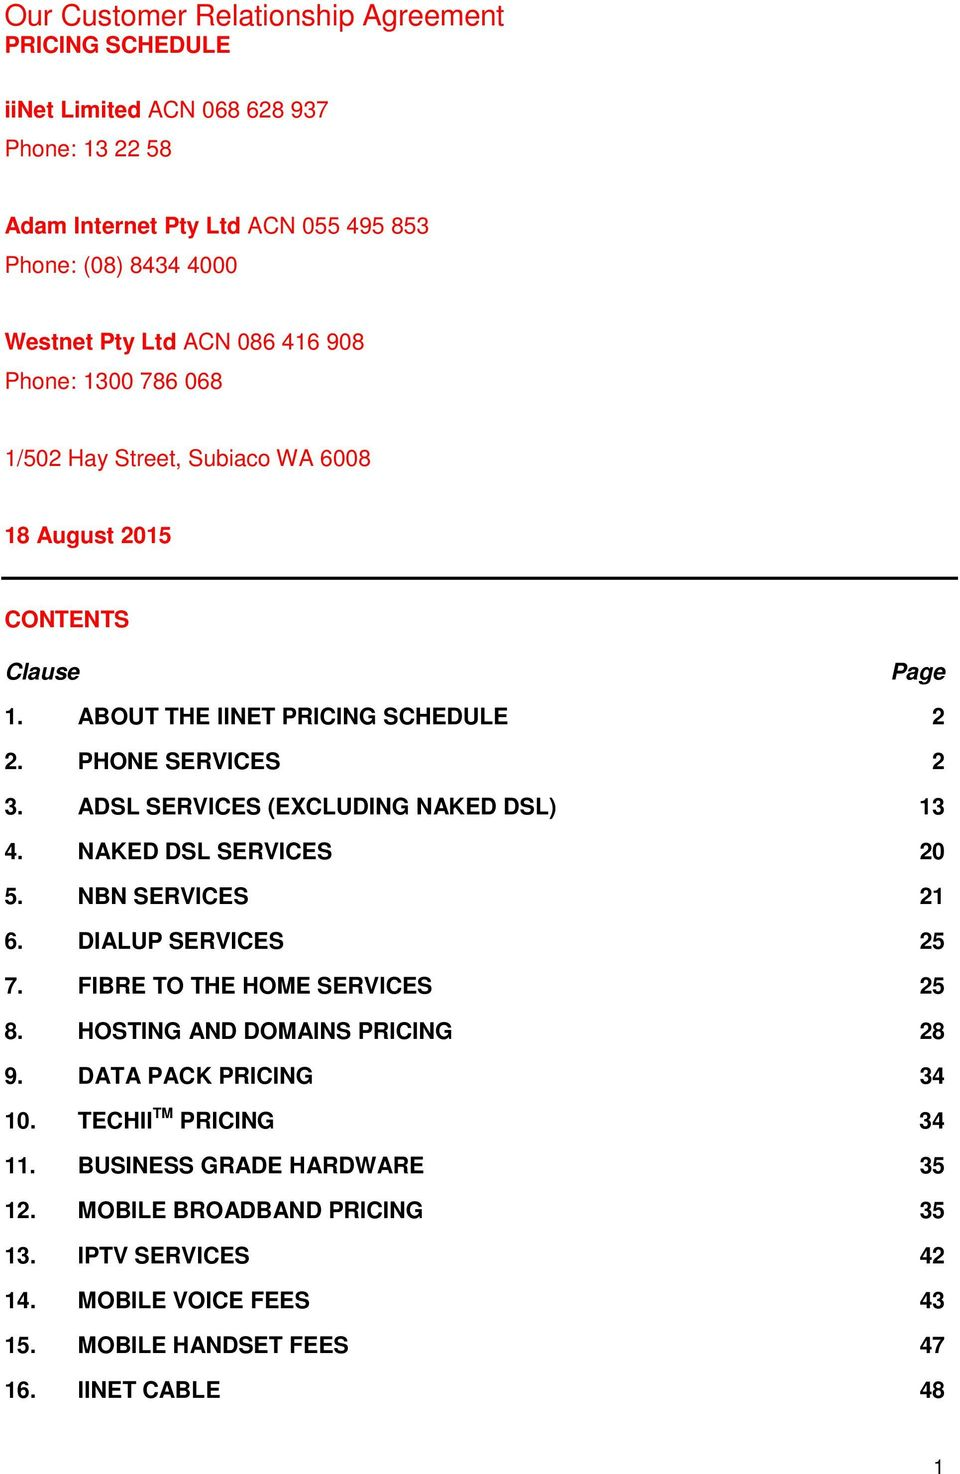 Our Customer Relationship Agreement PRICING SCHEDULE - PDF